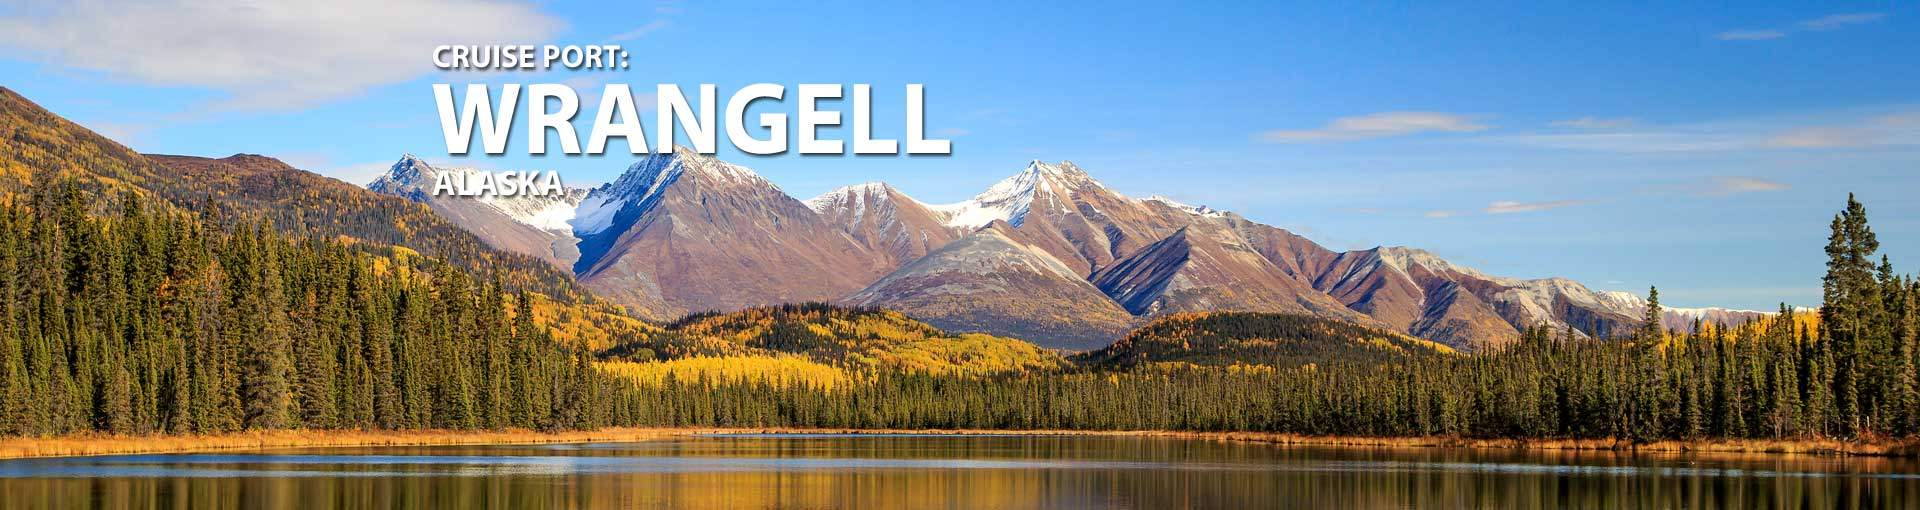 Cruises to Wrangell, Alaska